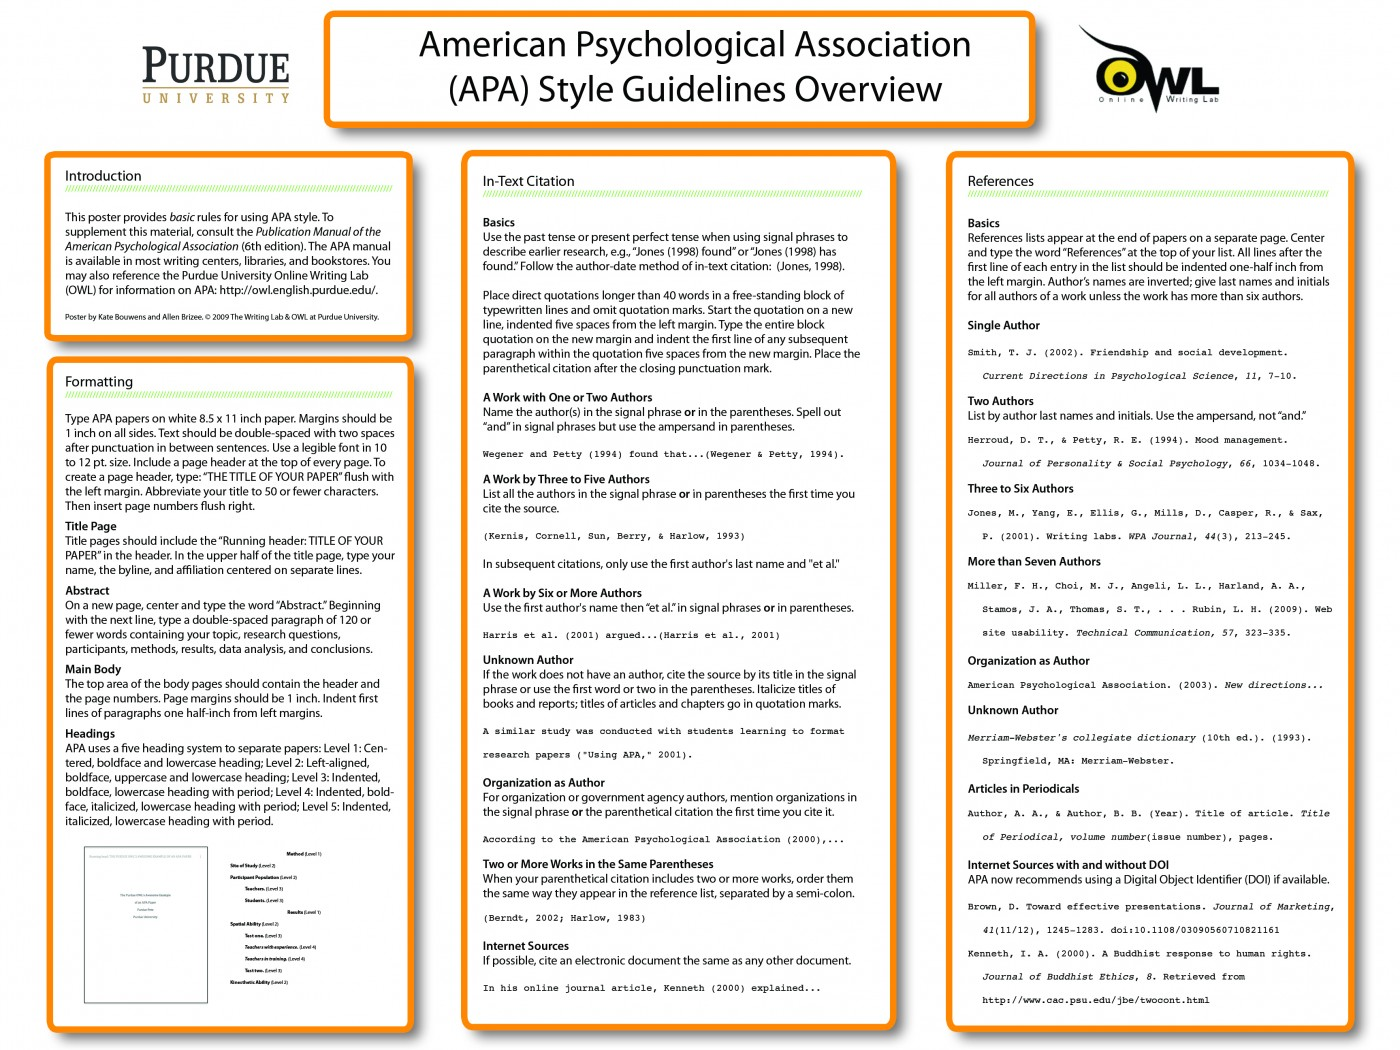 013 Apa Style Guide For Writing Research Papers Paper Best 1400